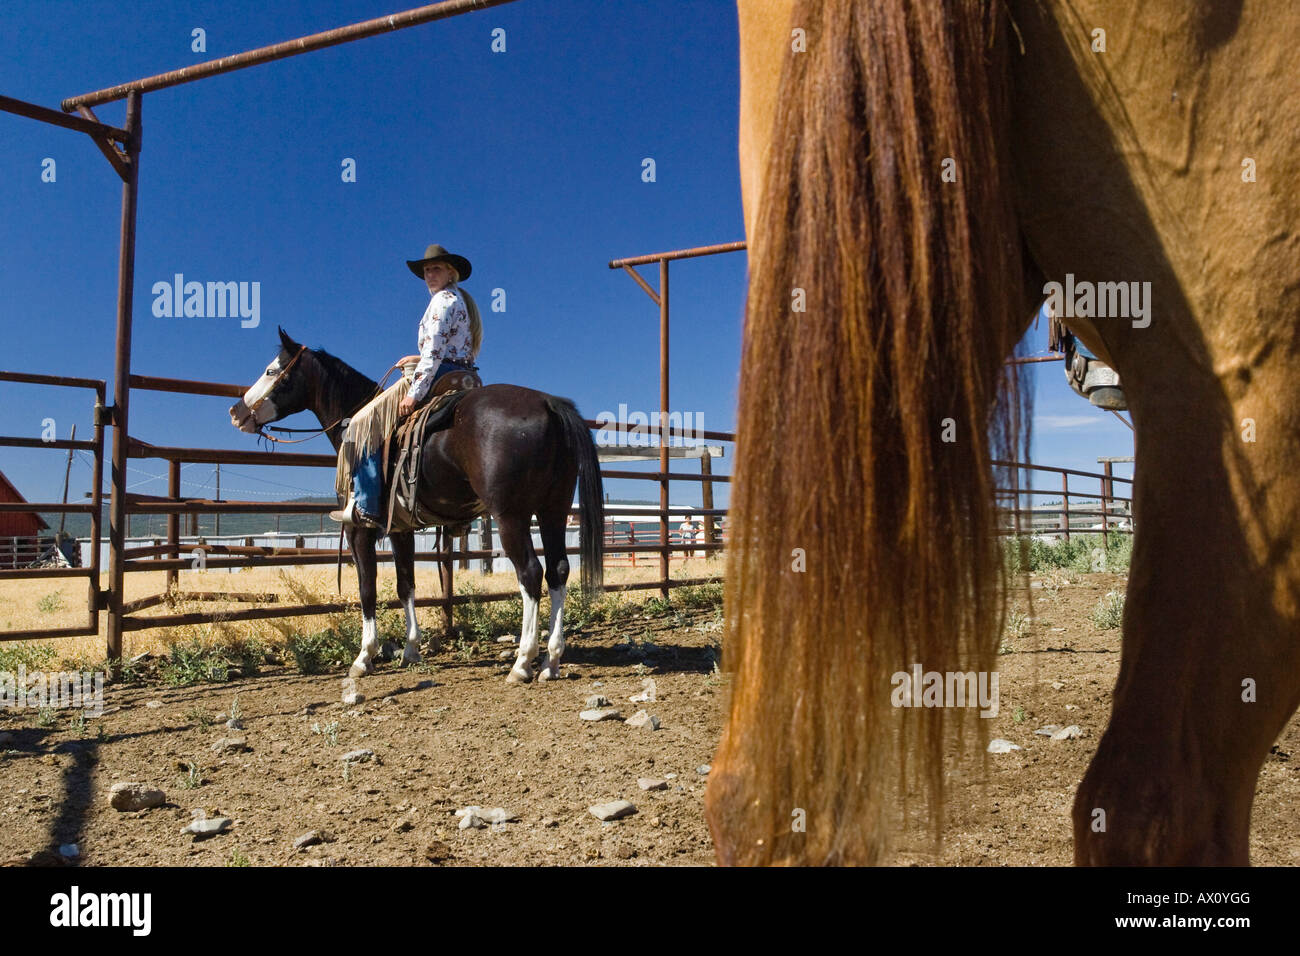 Cowgirl et cowboys travaillant sur le ranch, wildwest, Oregon, USA Photo Stock